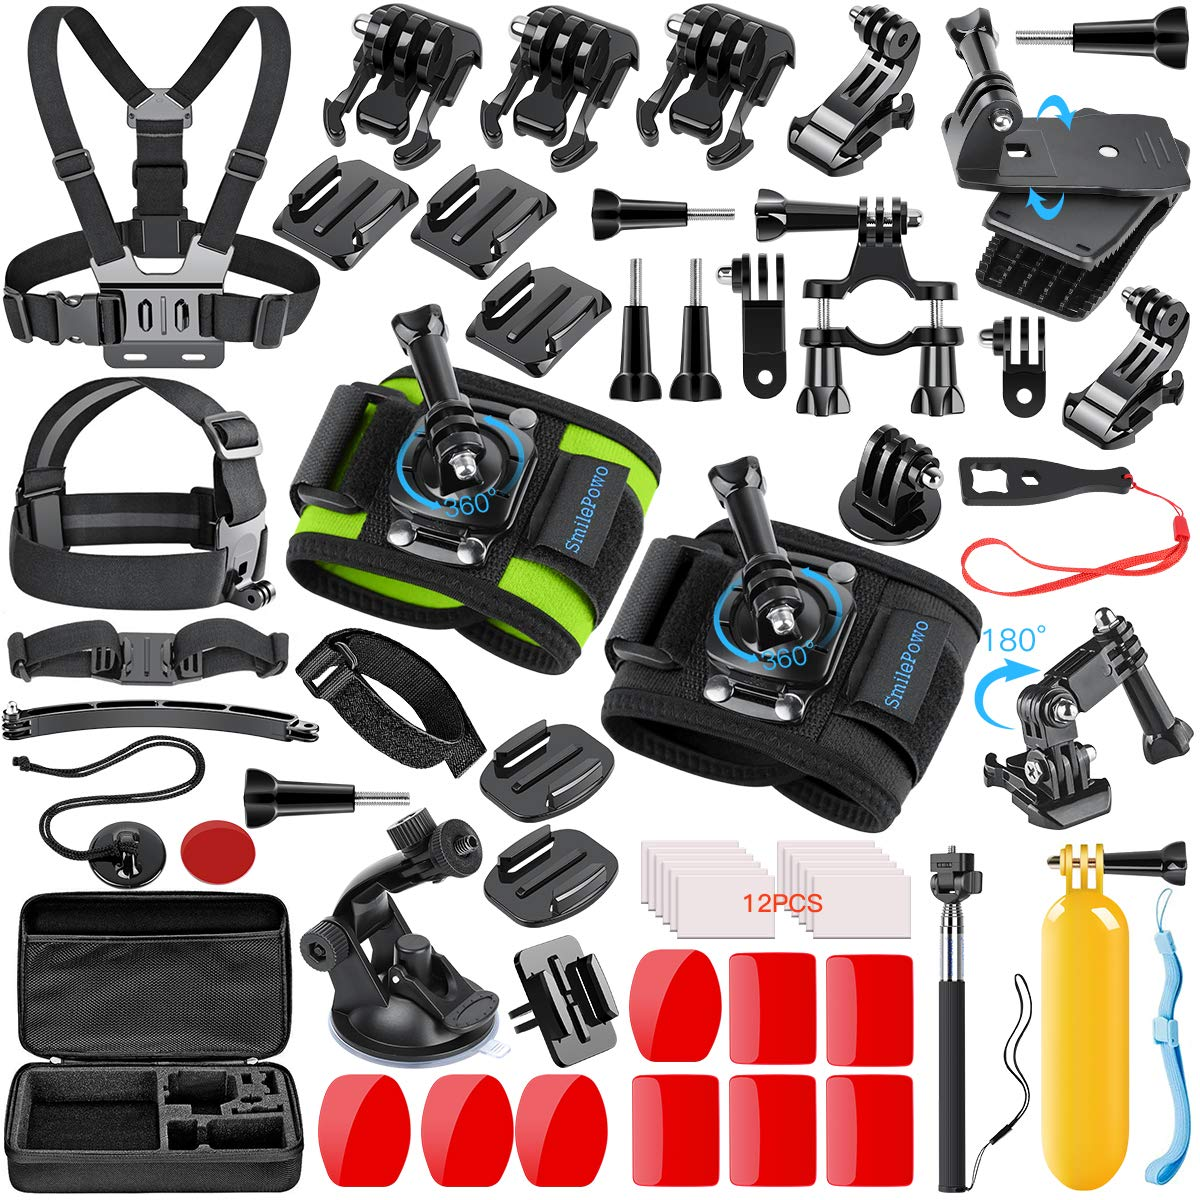 Xiaoyi and Other Action Cameras Cell Phones Hsifeng DJI New Action Hsifeng Portable Folding Plastic Tripod for GoPro New Hero //HERO7 //6//5 //5 Session //4 Session //4//3+ //3//2 //1